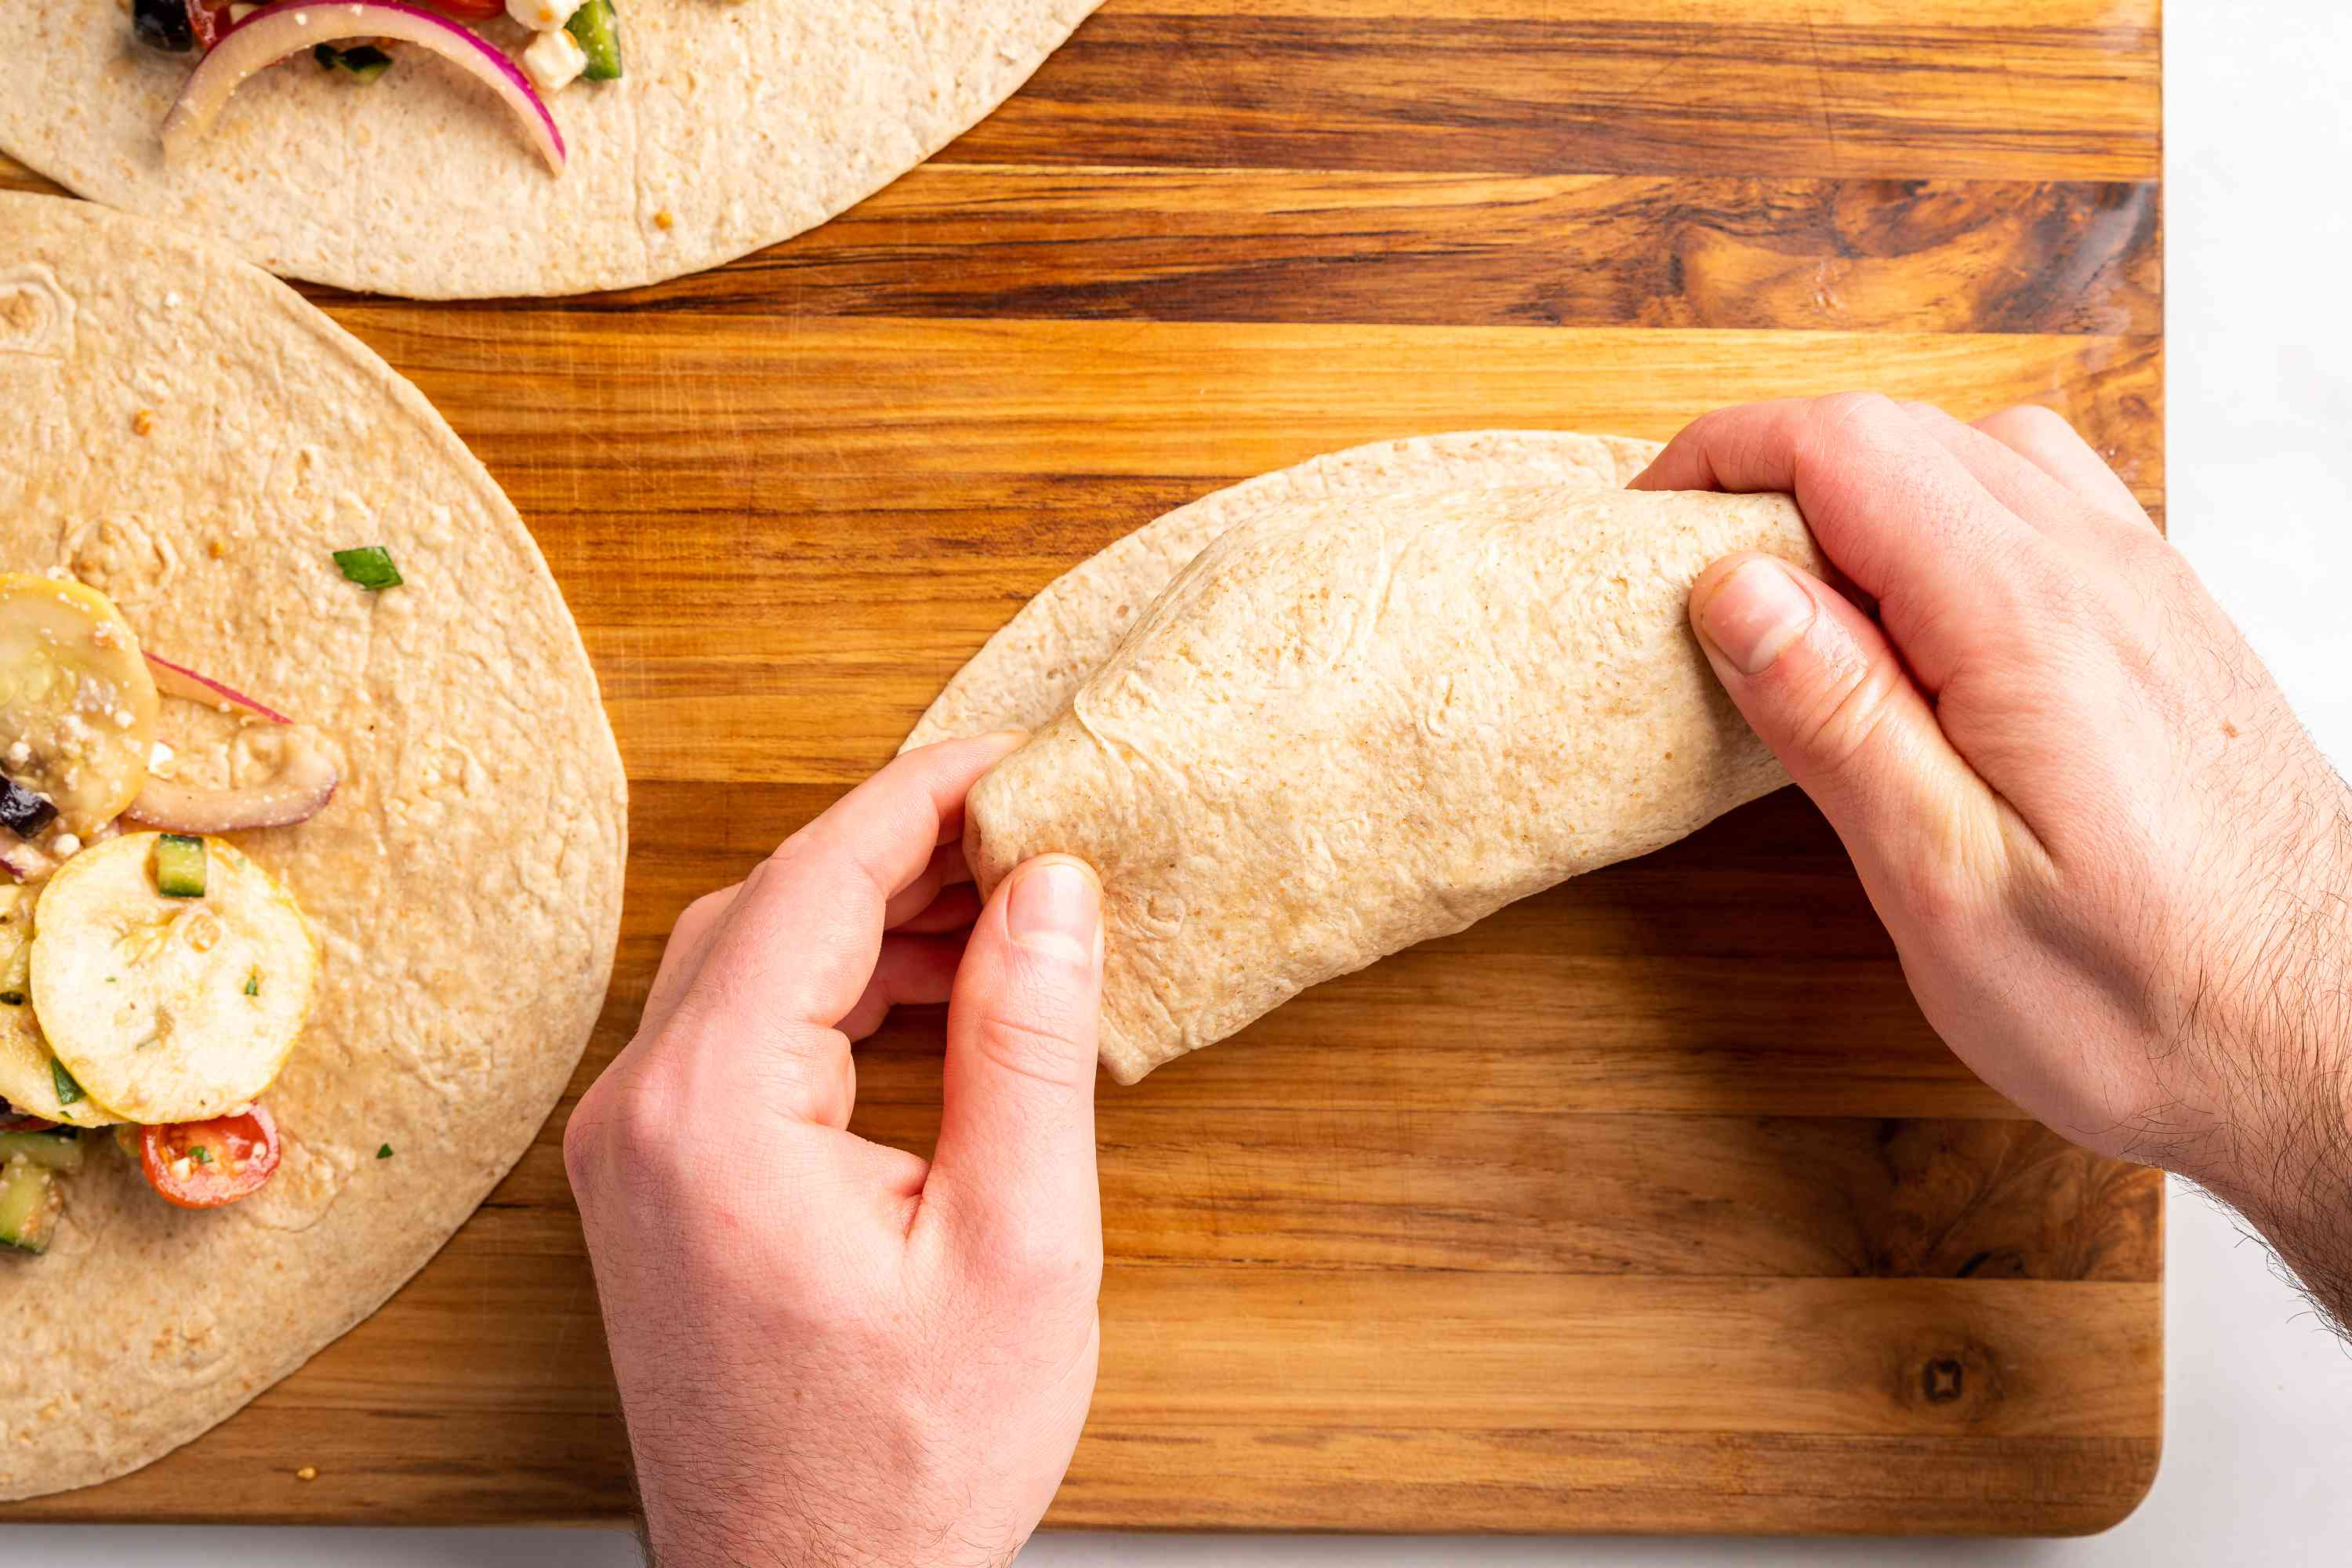 Hands rolling tortilla into complete wrap shape